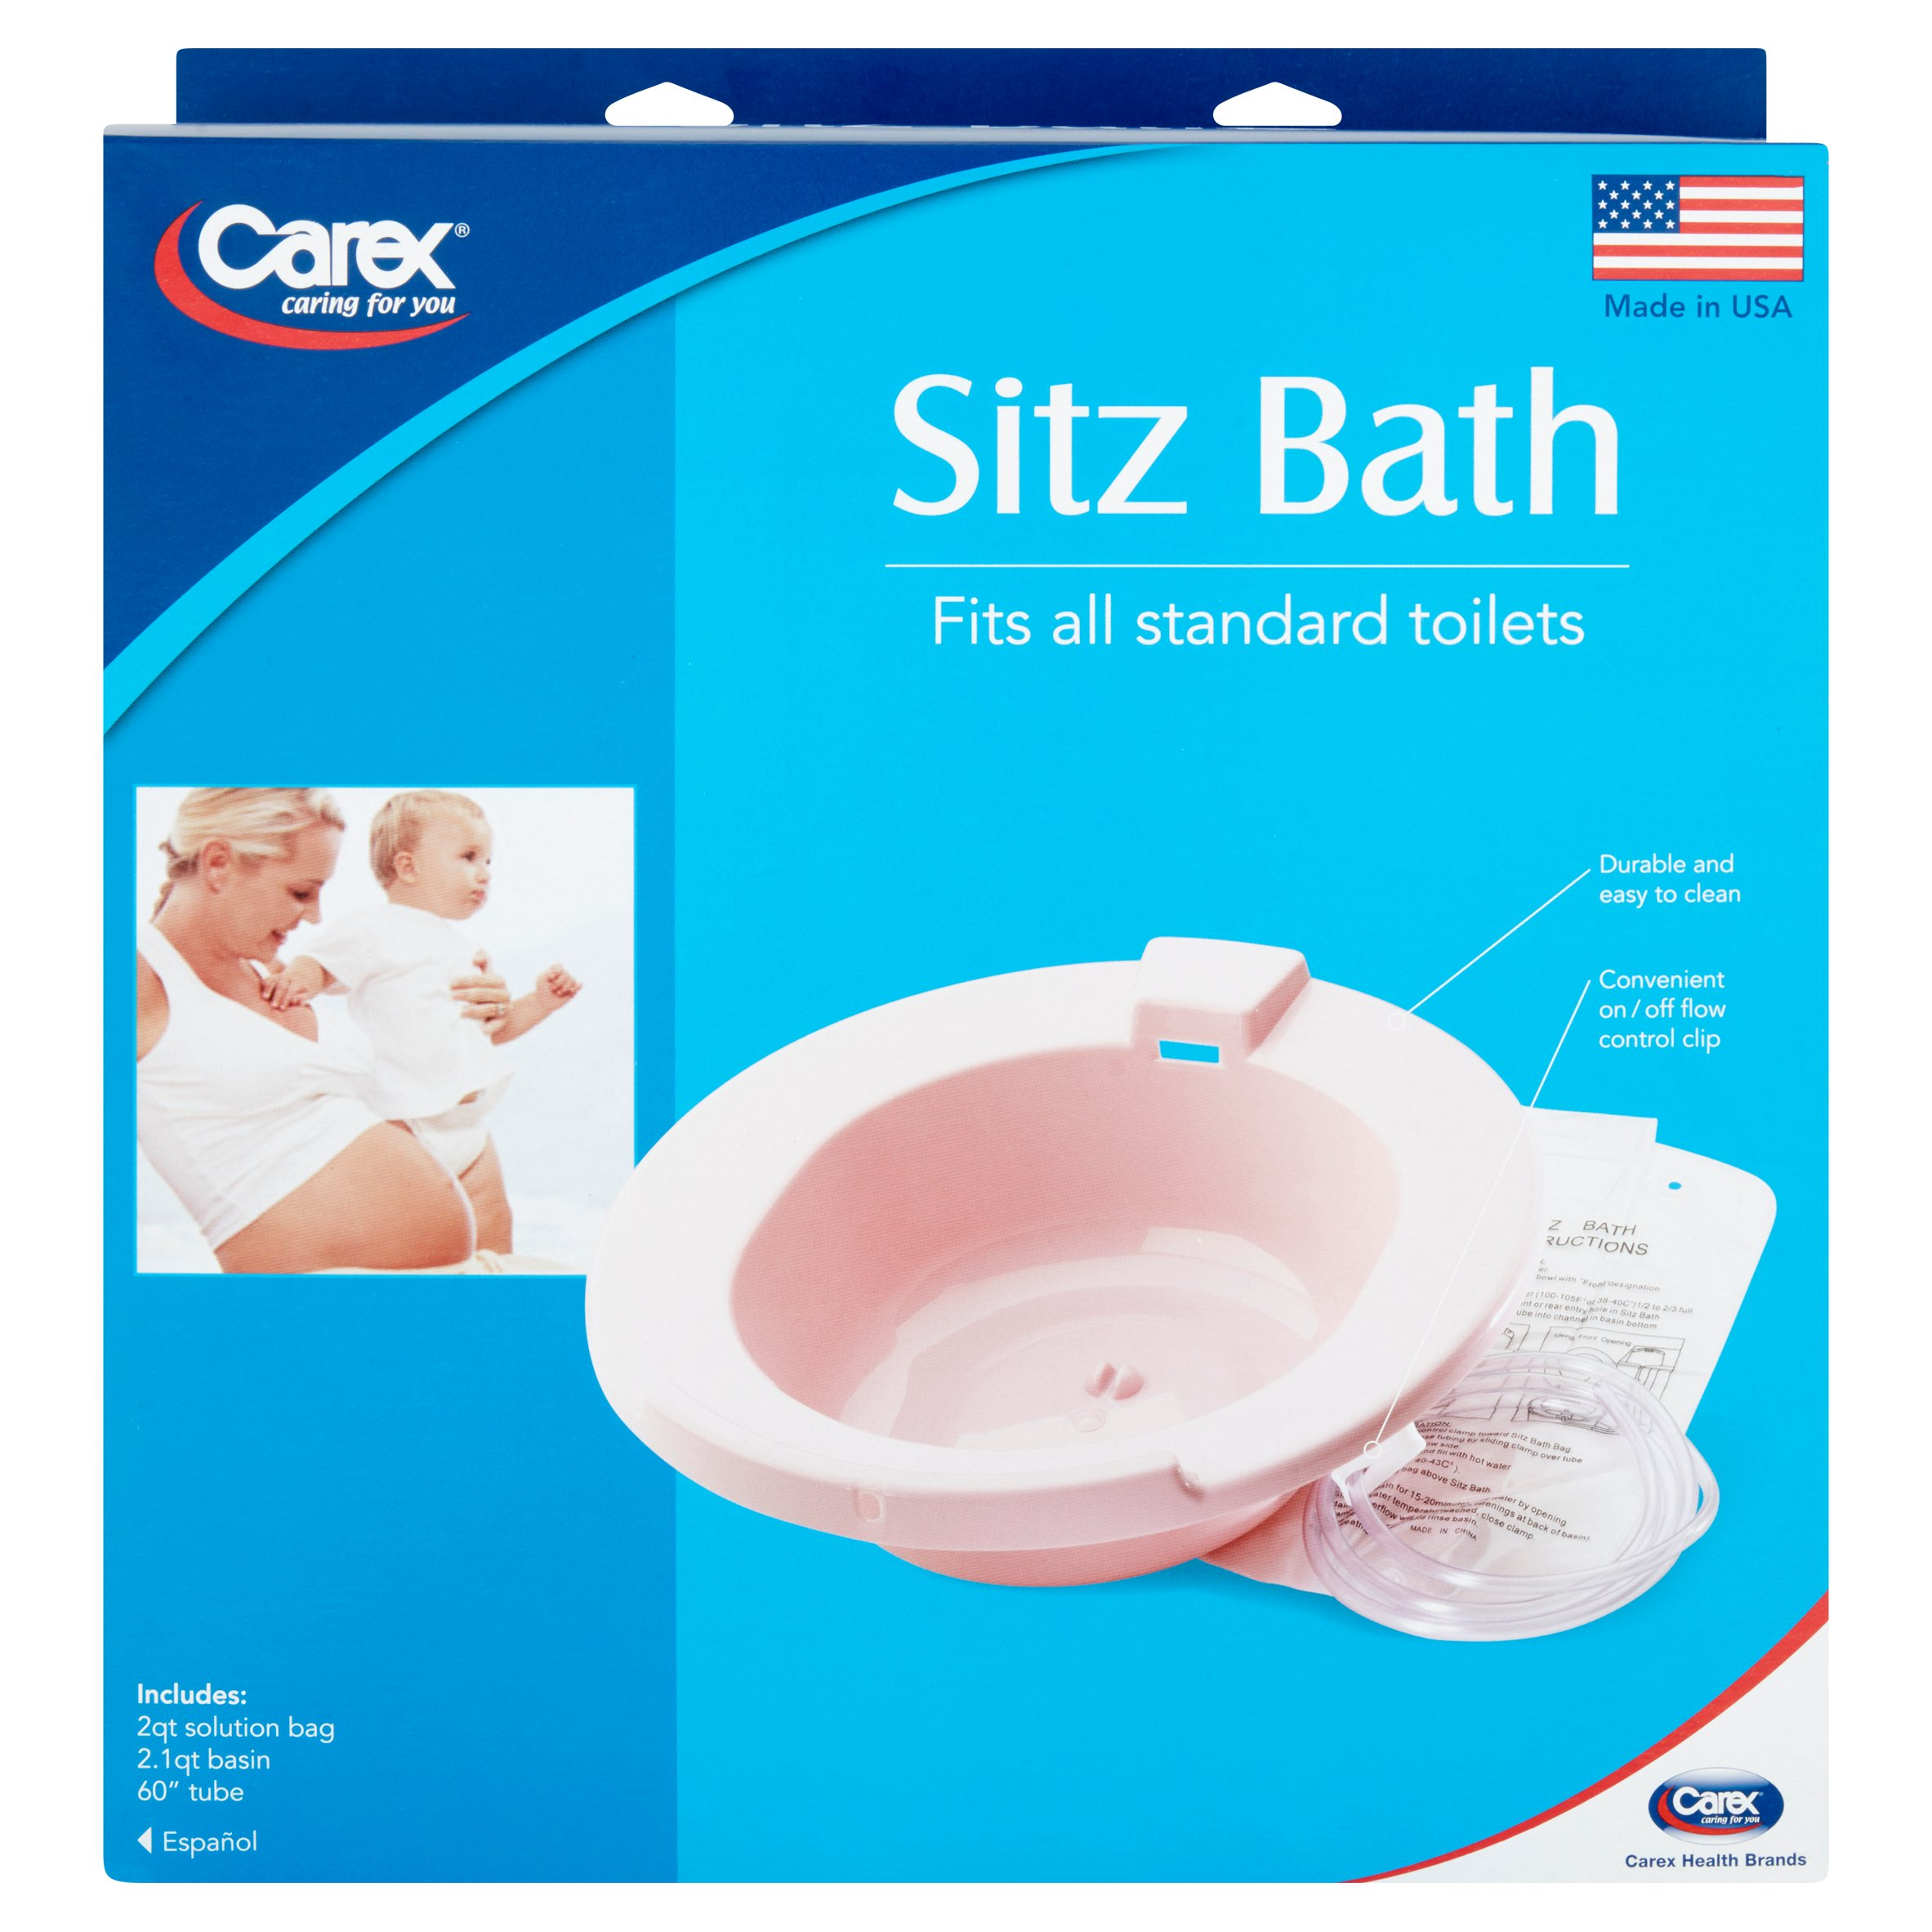 carex sitz bath - walmart, Skeleton